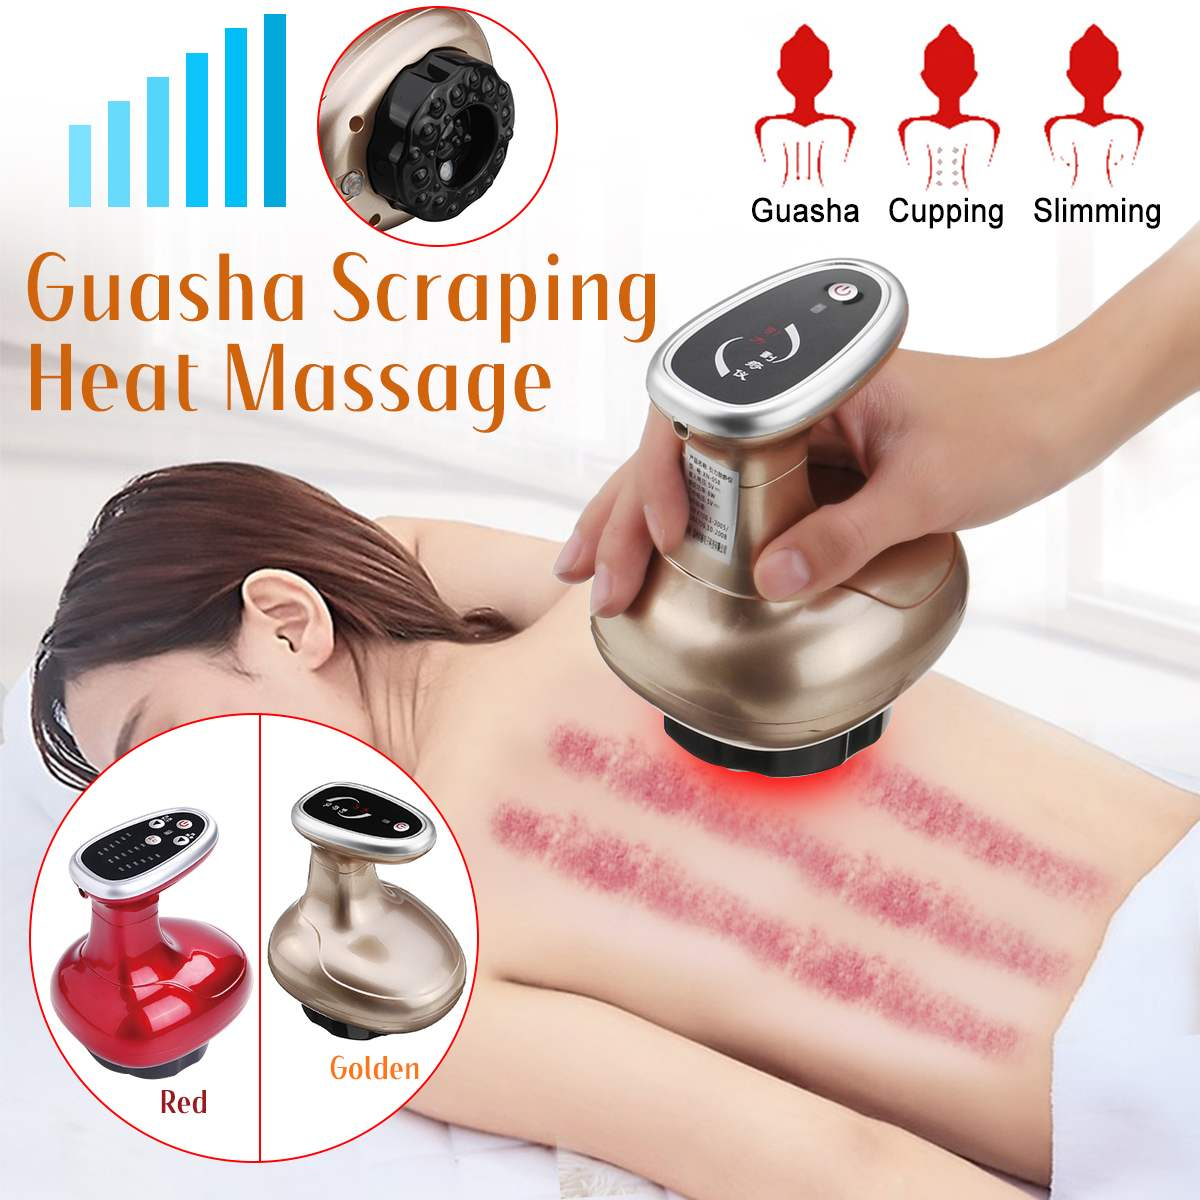 heater-Electric Cupping Body Massager Guasha Scraping Pump Suction Massage Body Cans Anti Cellulite Apparatu Magnetic Therapy